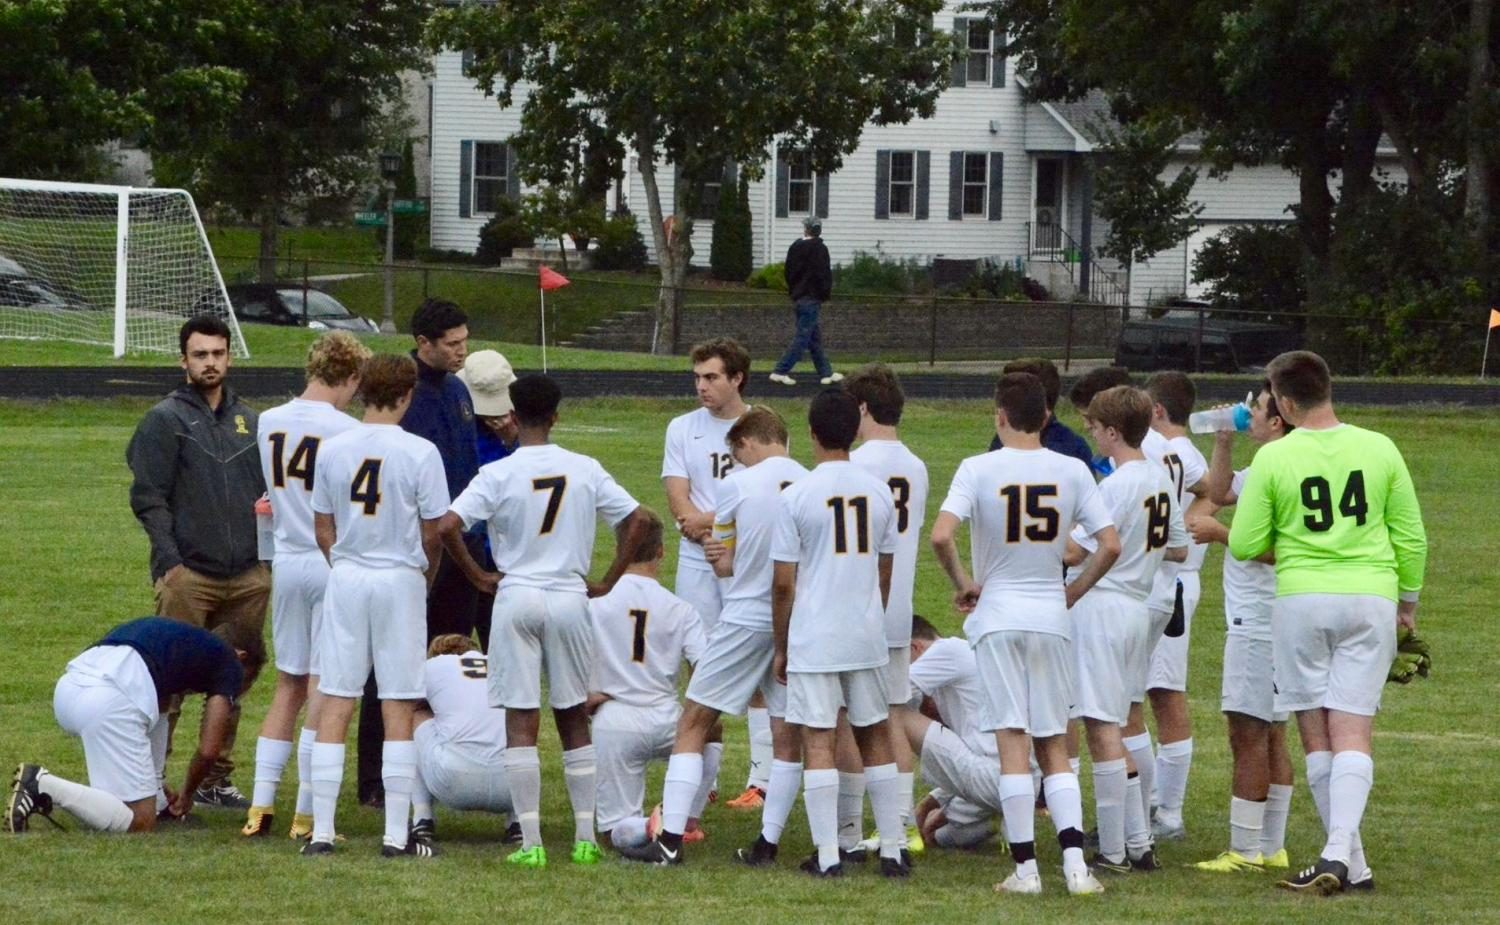 The+Boys+Varsity+Soccer+team+played+against+Providence+Academy+and+Sept.+5+at+SPA.+SPA+won+with+a+final+score+of+3-1.